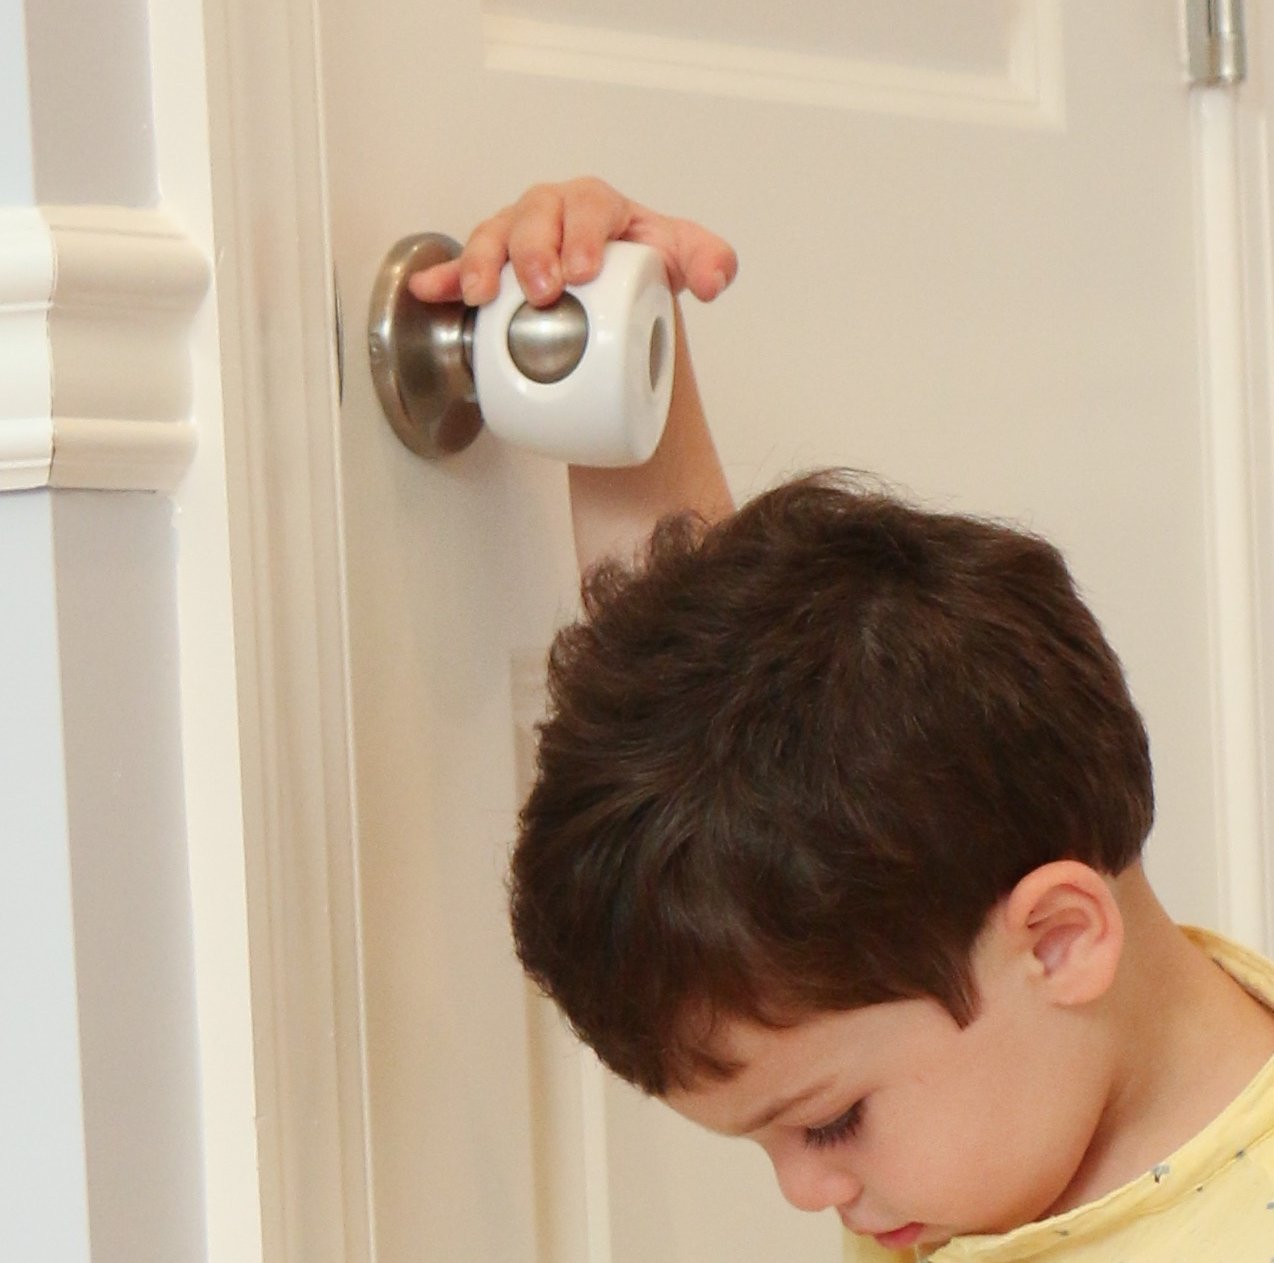 Door Knob Covers - 4 Pack - Child Safety Cover - Child Proof Doors by Jool Baby by Jool Baby Products